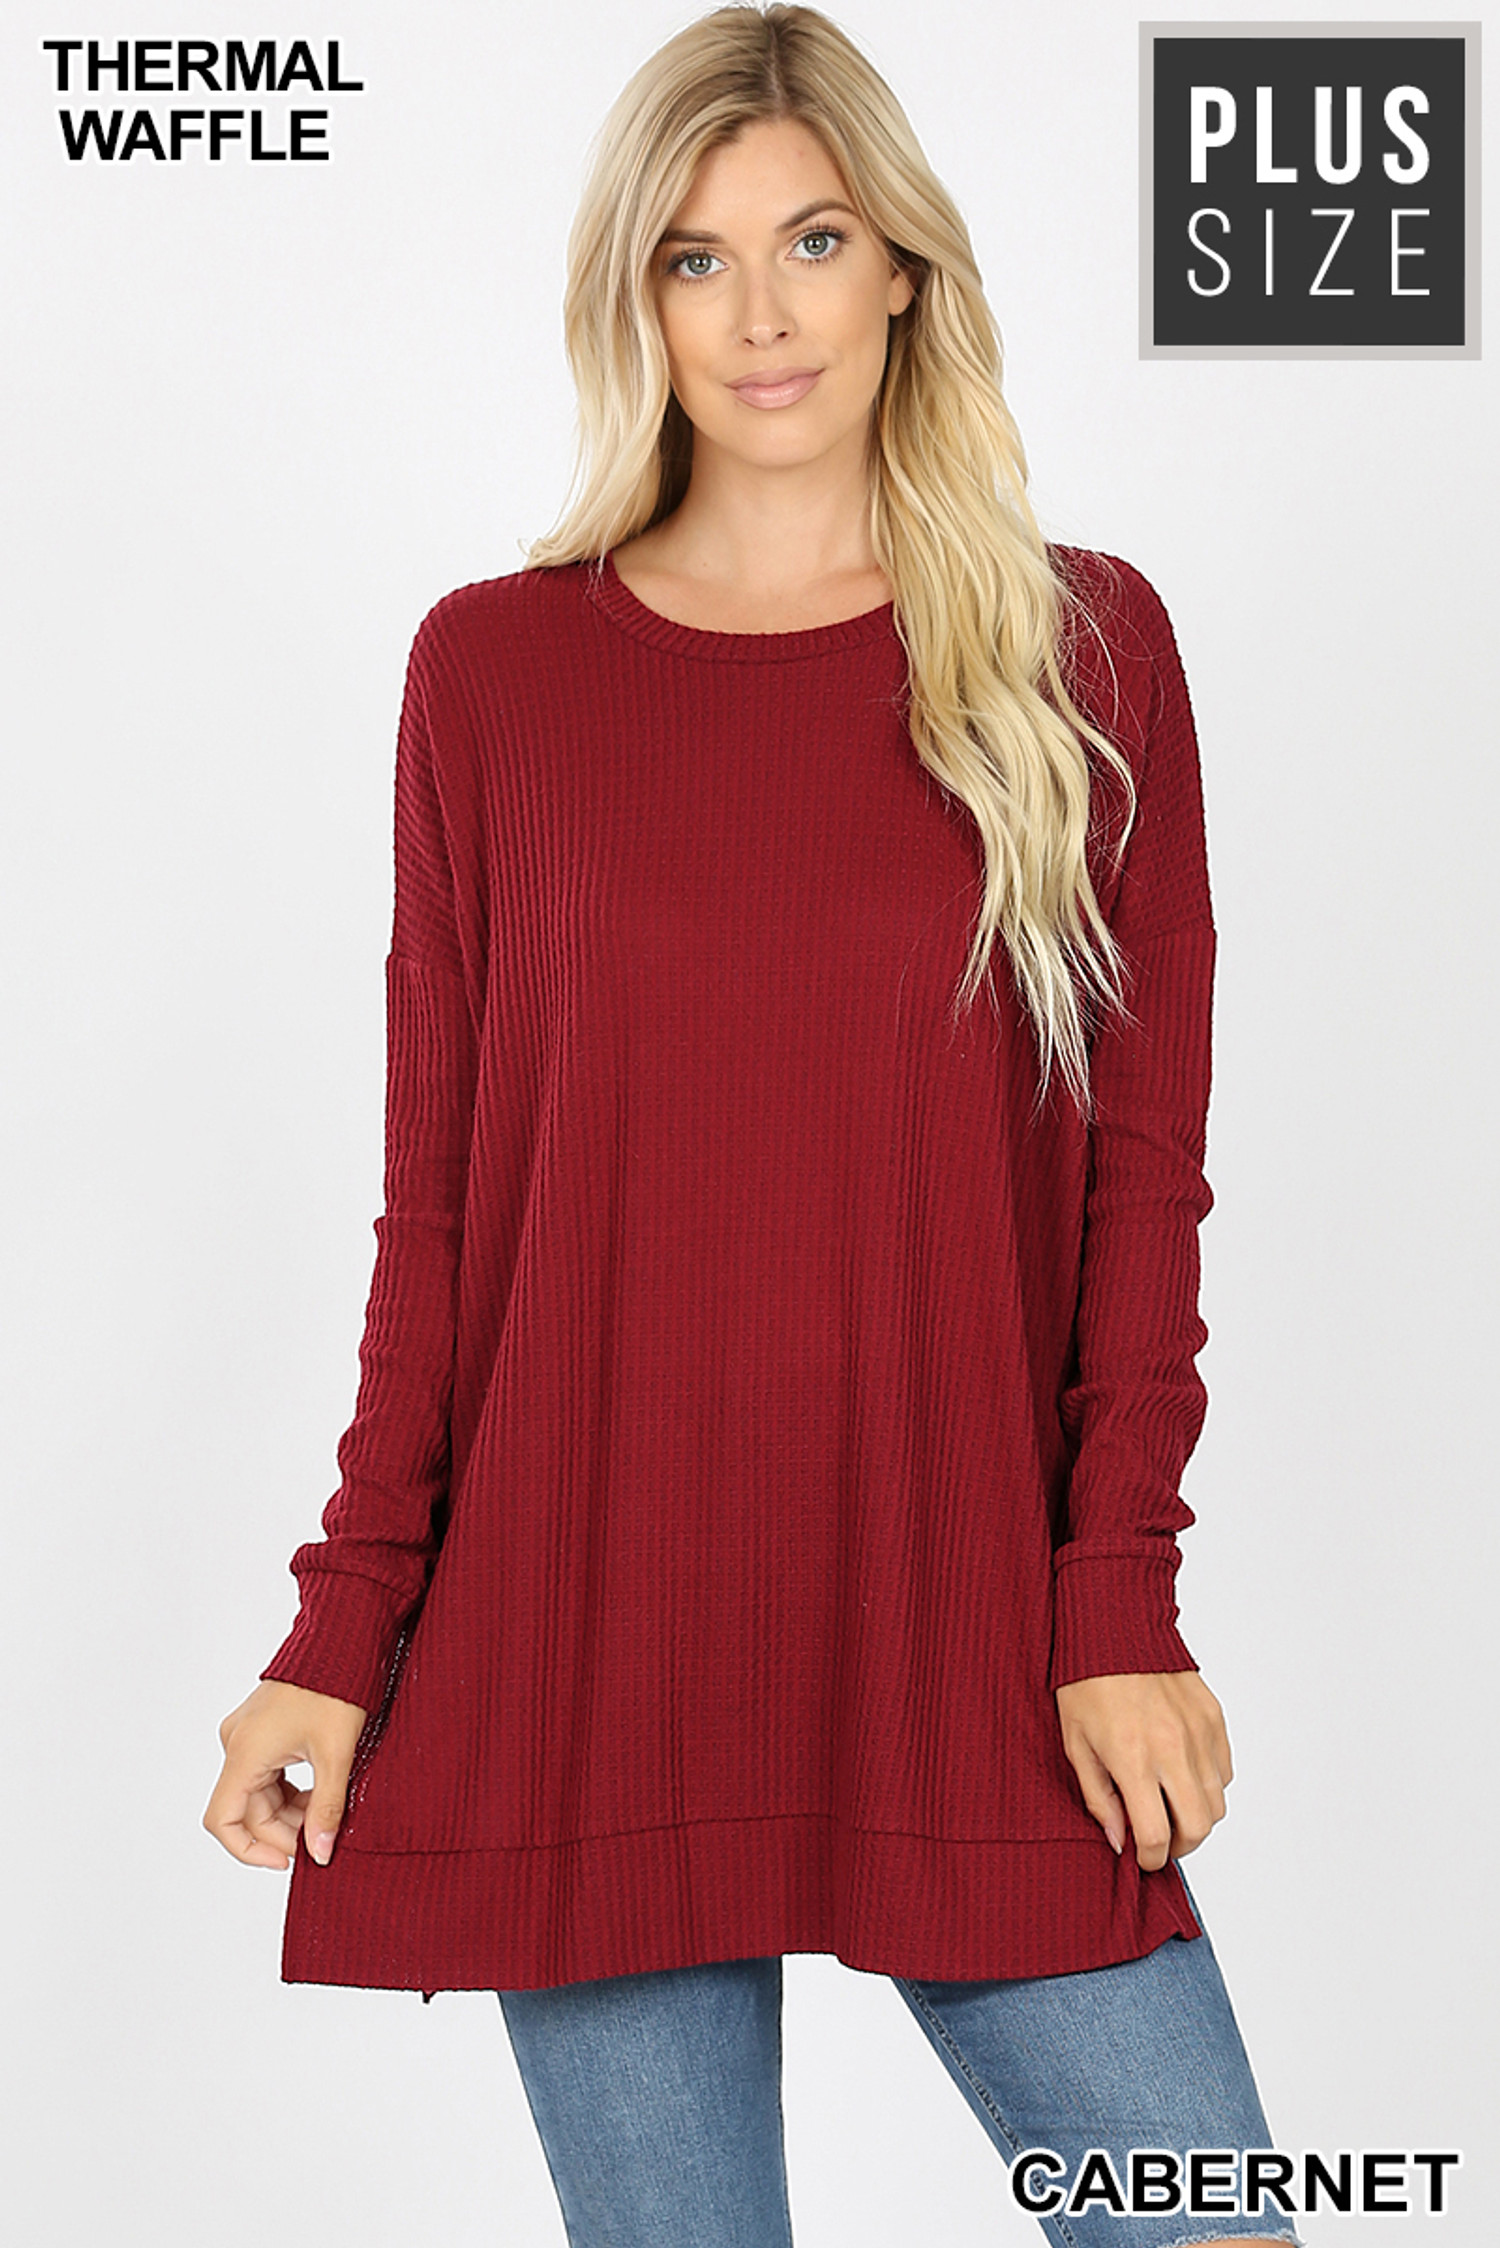 Front image of Cabernet Brushed Thermal Waffle Knit Round Neck Plus Size Sweater